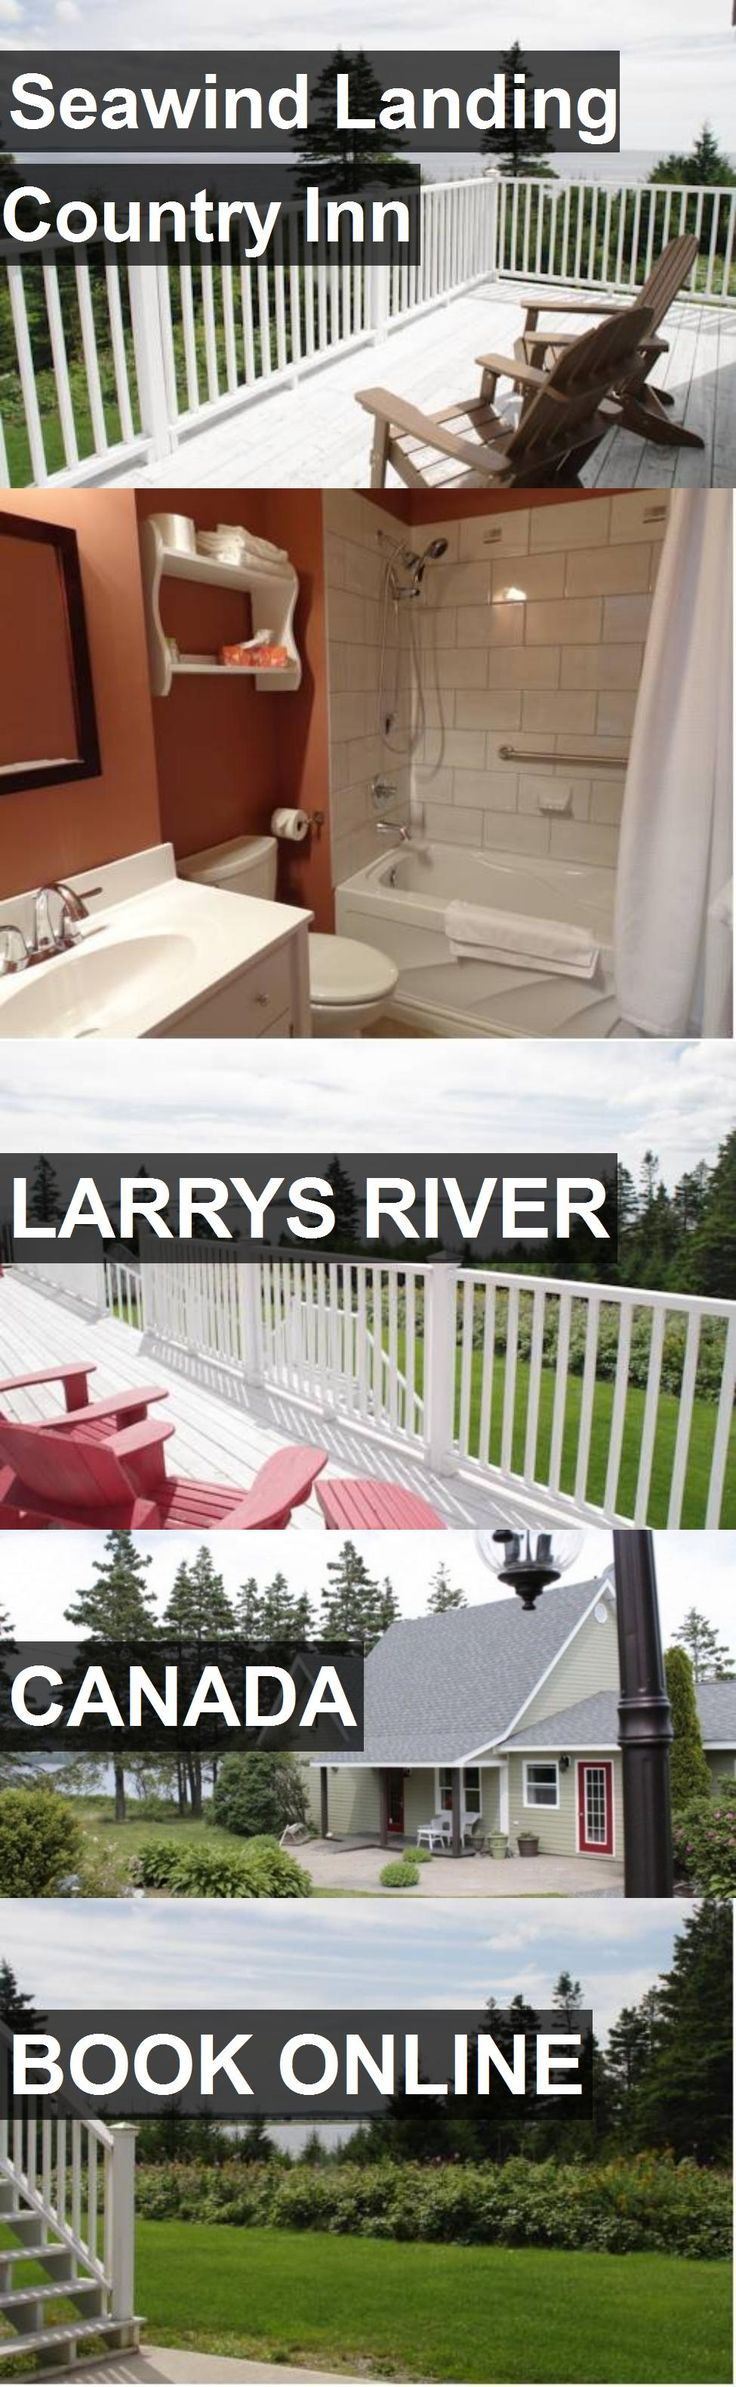 Hotel Seawind Landing Country Inn in Larrys River, Canada. For more information, photos, reviews and best prices please follow the link. #Canada #LarrysRiver #travel #vacation #hotel